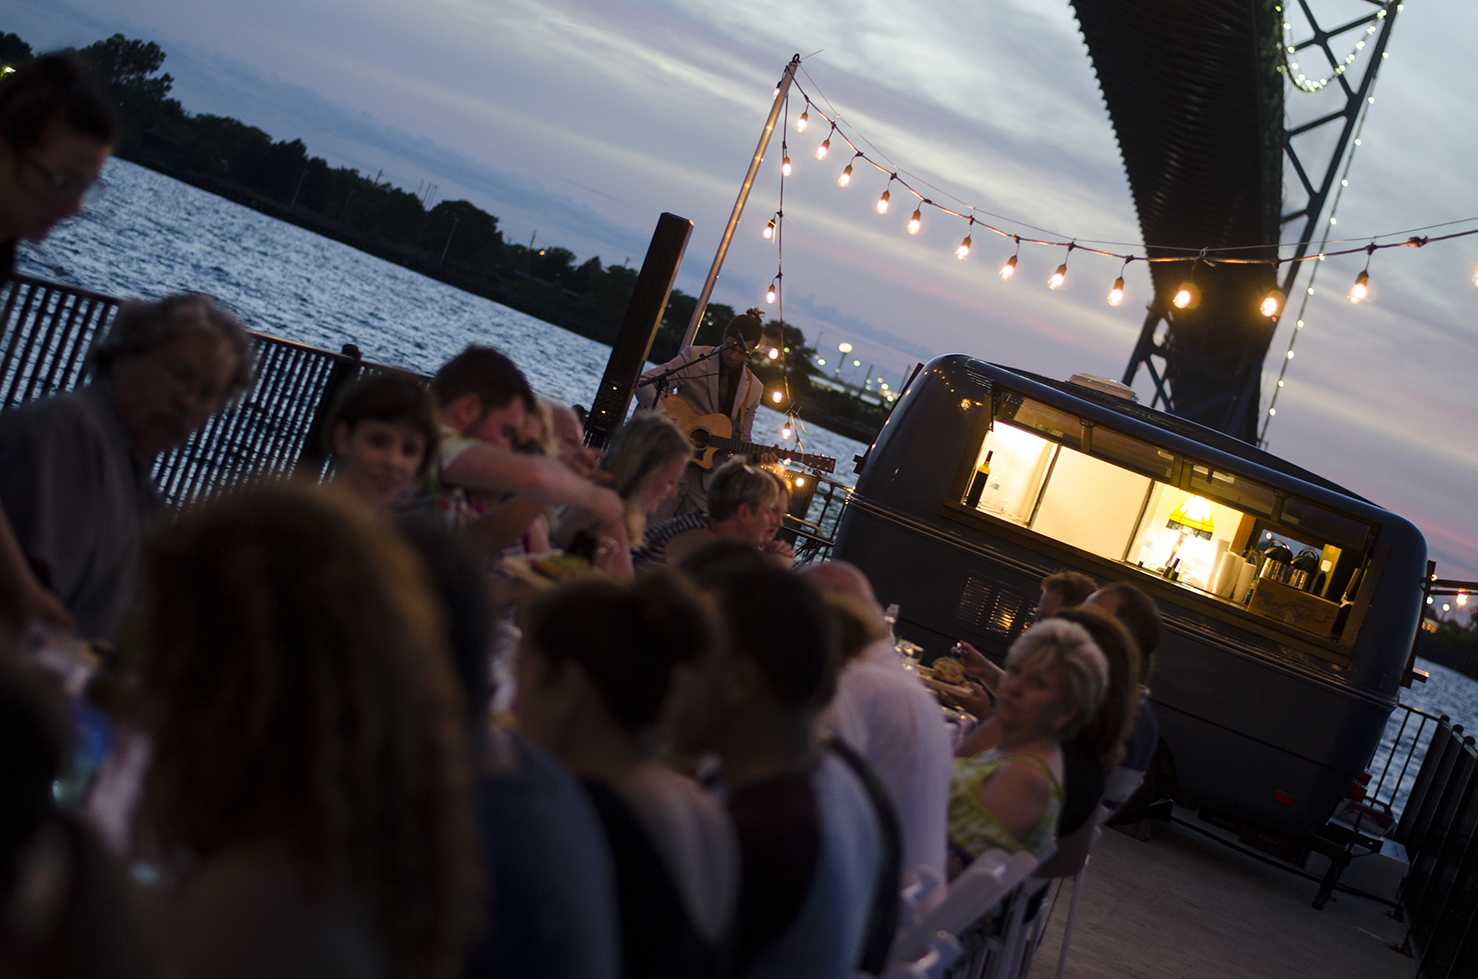 Dinner on a Pier is back!